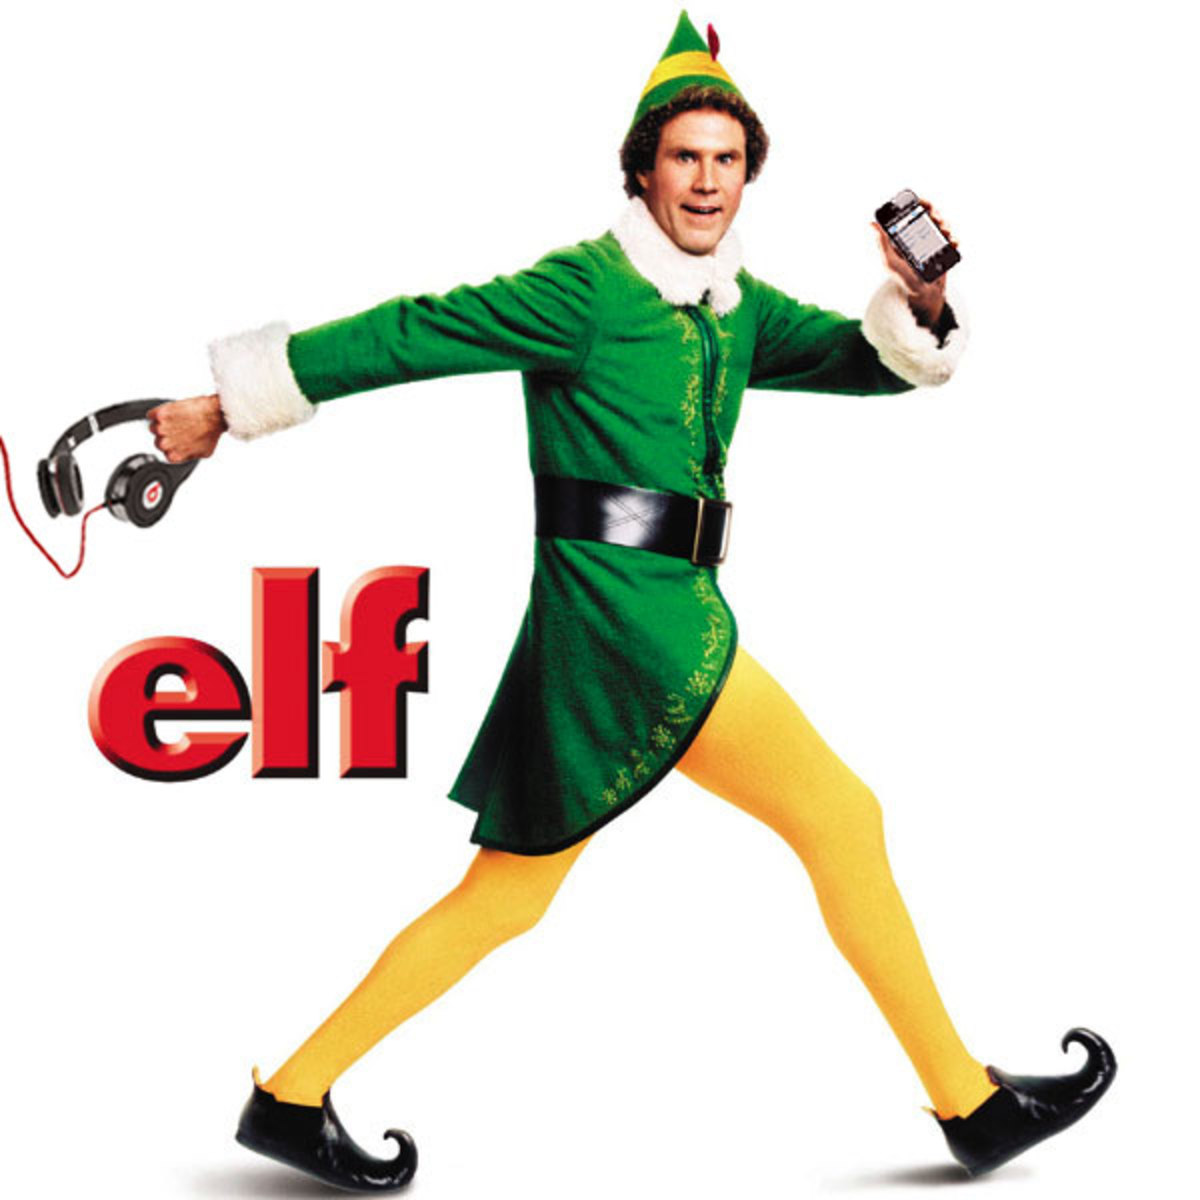 Buddy the Elf from my favorite Christmas movie - Buddy is wearing a green jacket, matching hat, yellow tights, black shoes and that big black belt.